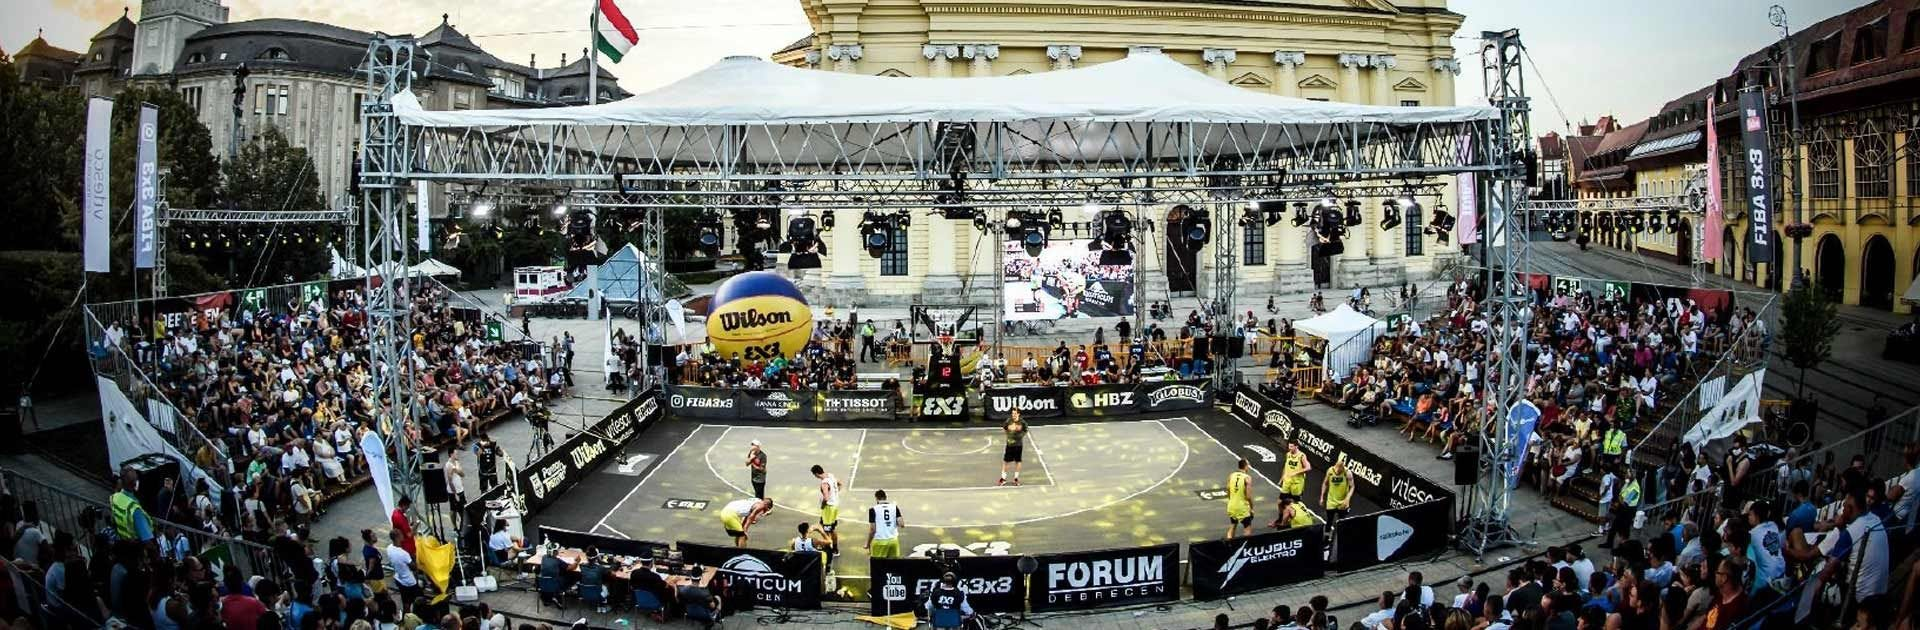 Photo of FIBA 3x3 court in a packed stadium